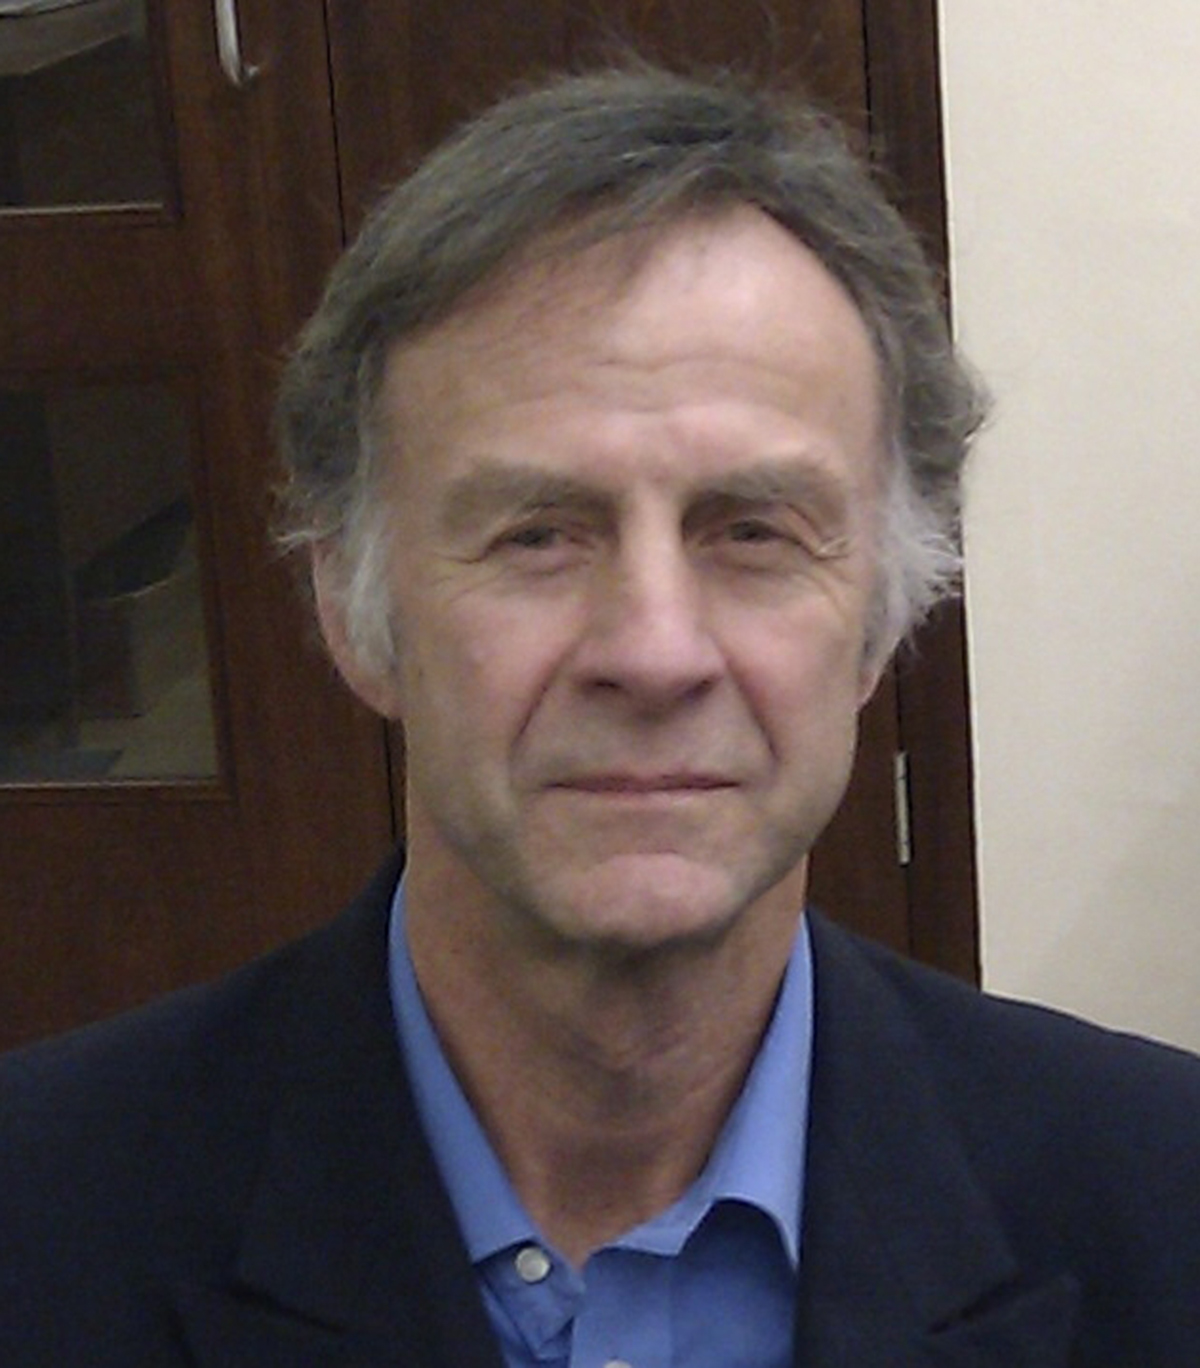 Ranulph Fiennes at Cambridge University in 2011. Photo by B. Milnes, Wikimedia Commons